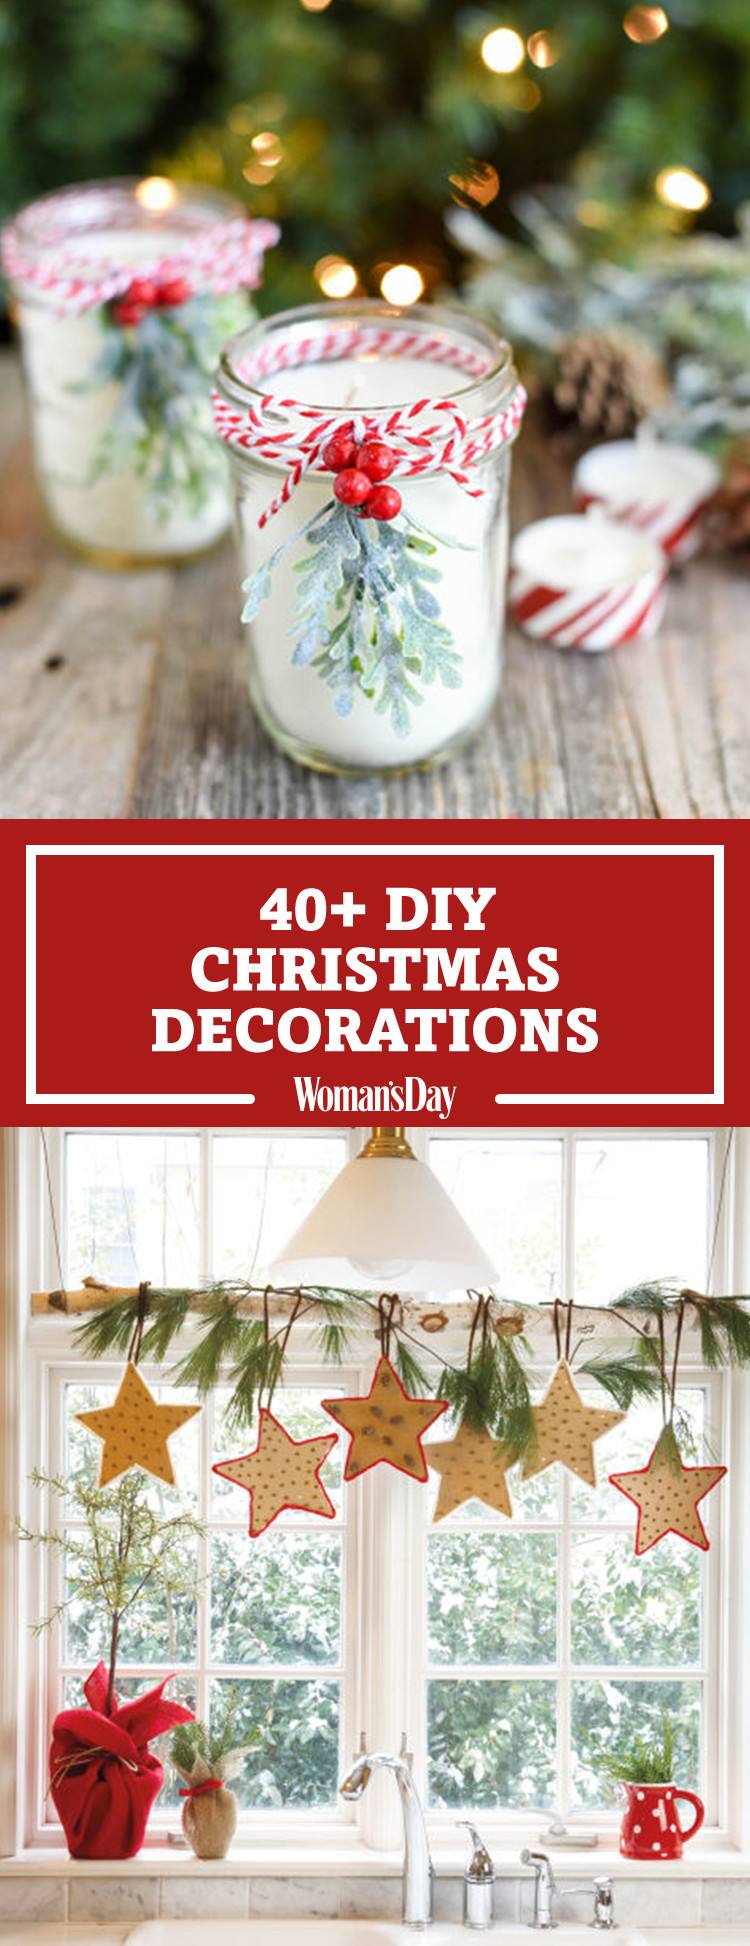 Best ideas about DIY Christmas Decor . Save or Pin 47 Easy DIY Christmas Decorations Homemade Ideas for Now.